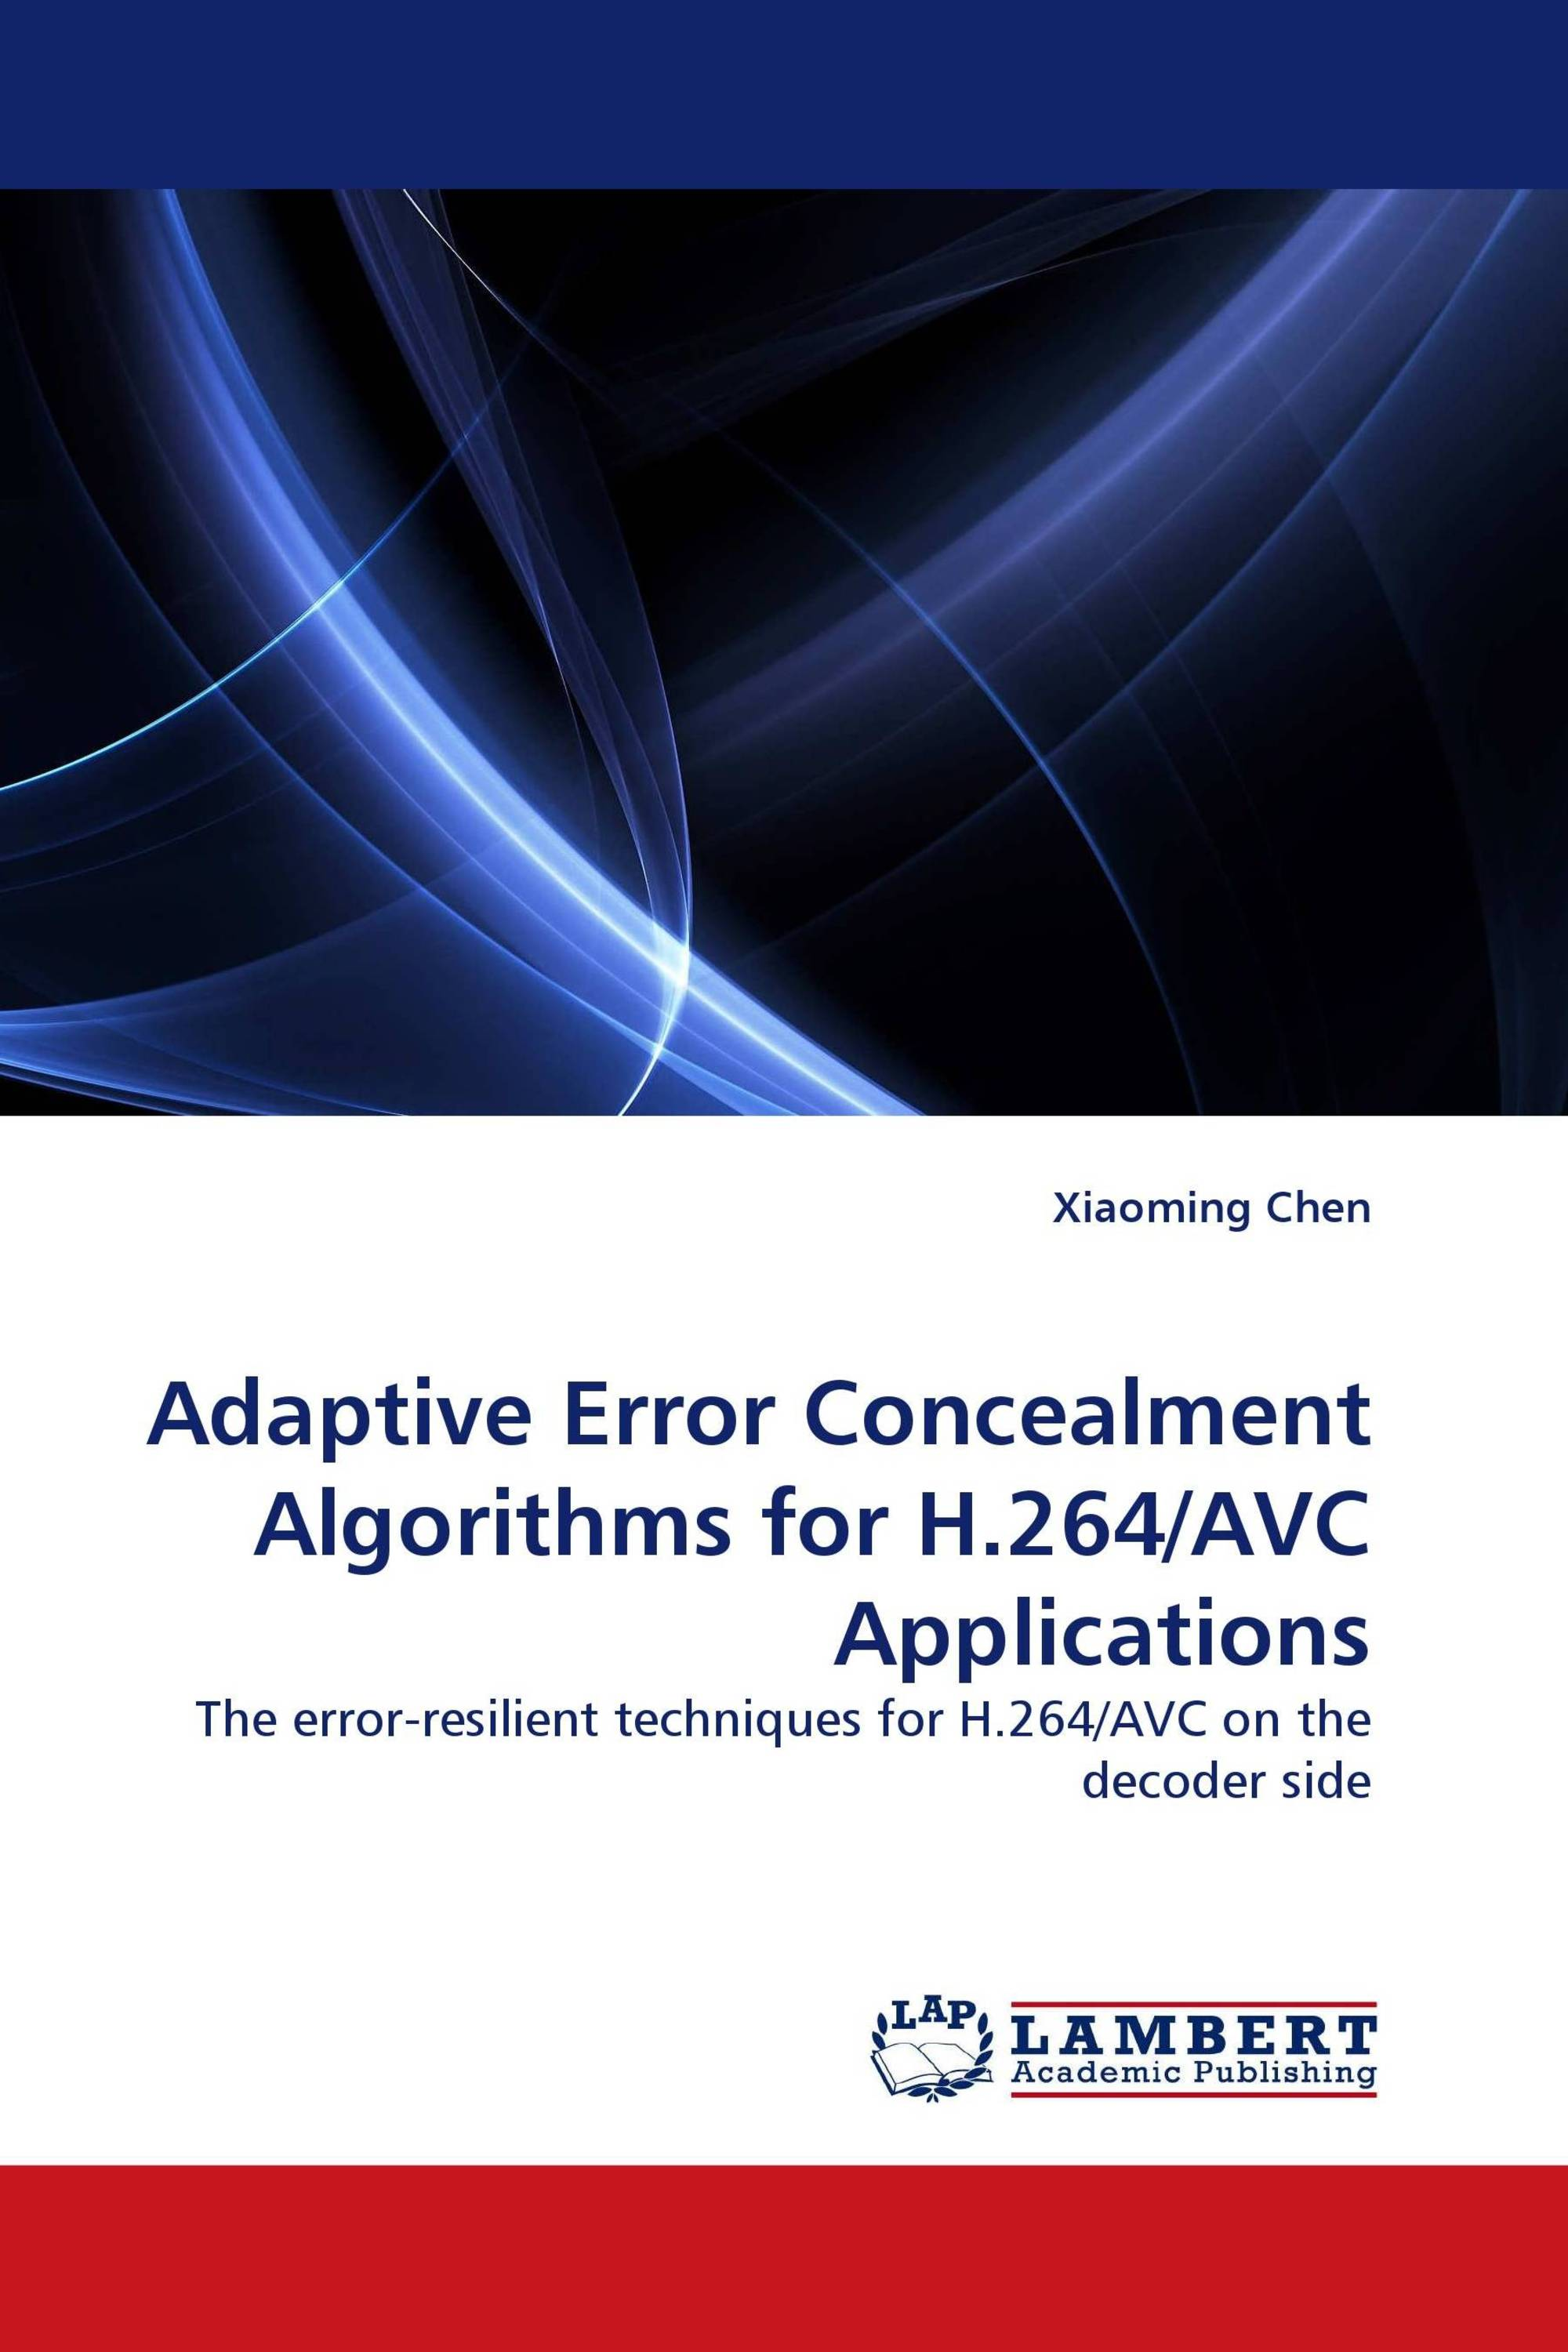 Adaptive Error Concealment Algorithms for H.264/AVC Applications